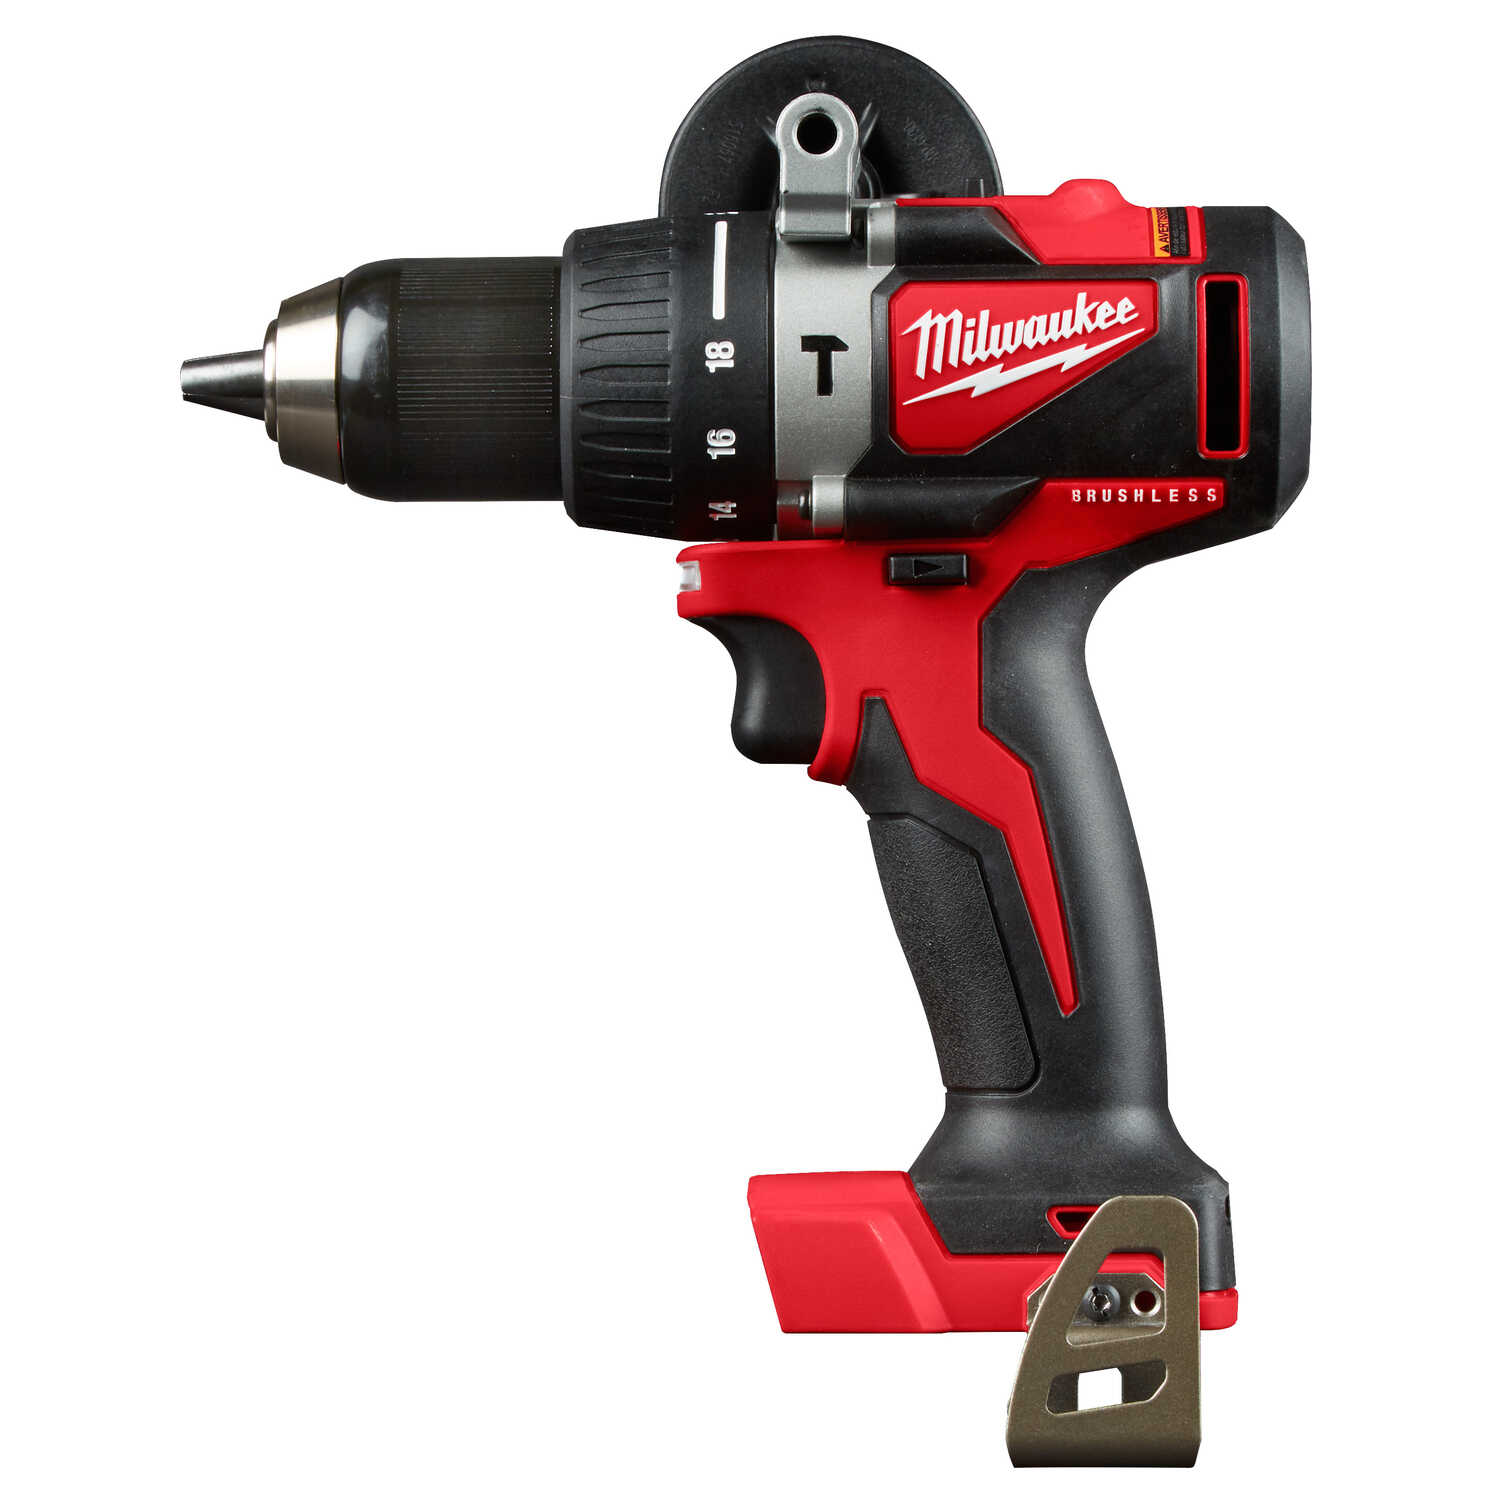 Milwaukee  M18  18 volt Brushless  Cordless Hammer Drill/Driver  Bare Tool  1/2 in. 1800 rpm